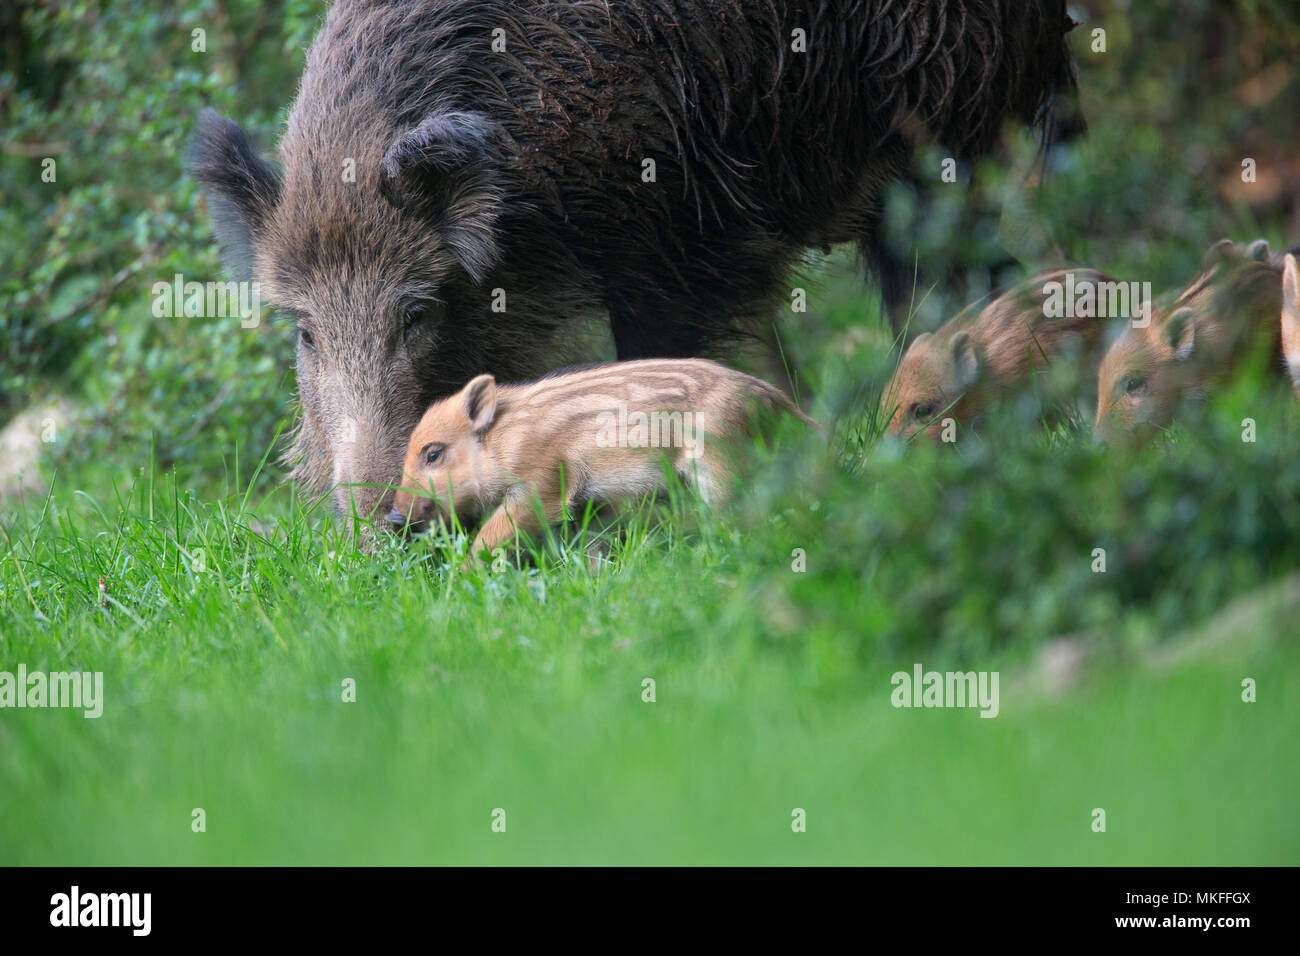 Wild boar (Sus scrofa) sow and piglets in grass, Ardennes, Belgium - Stock Image